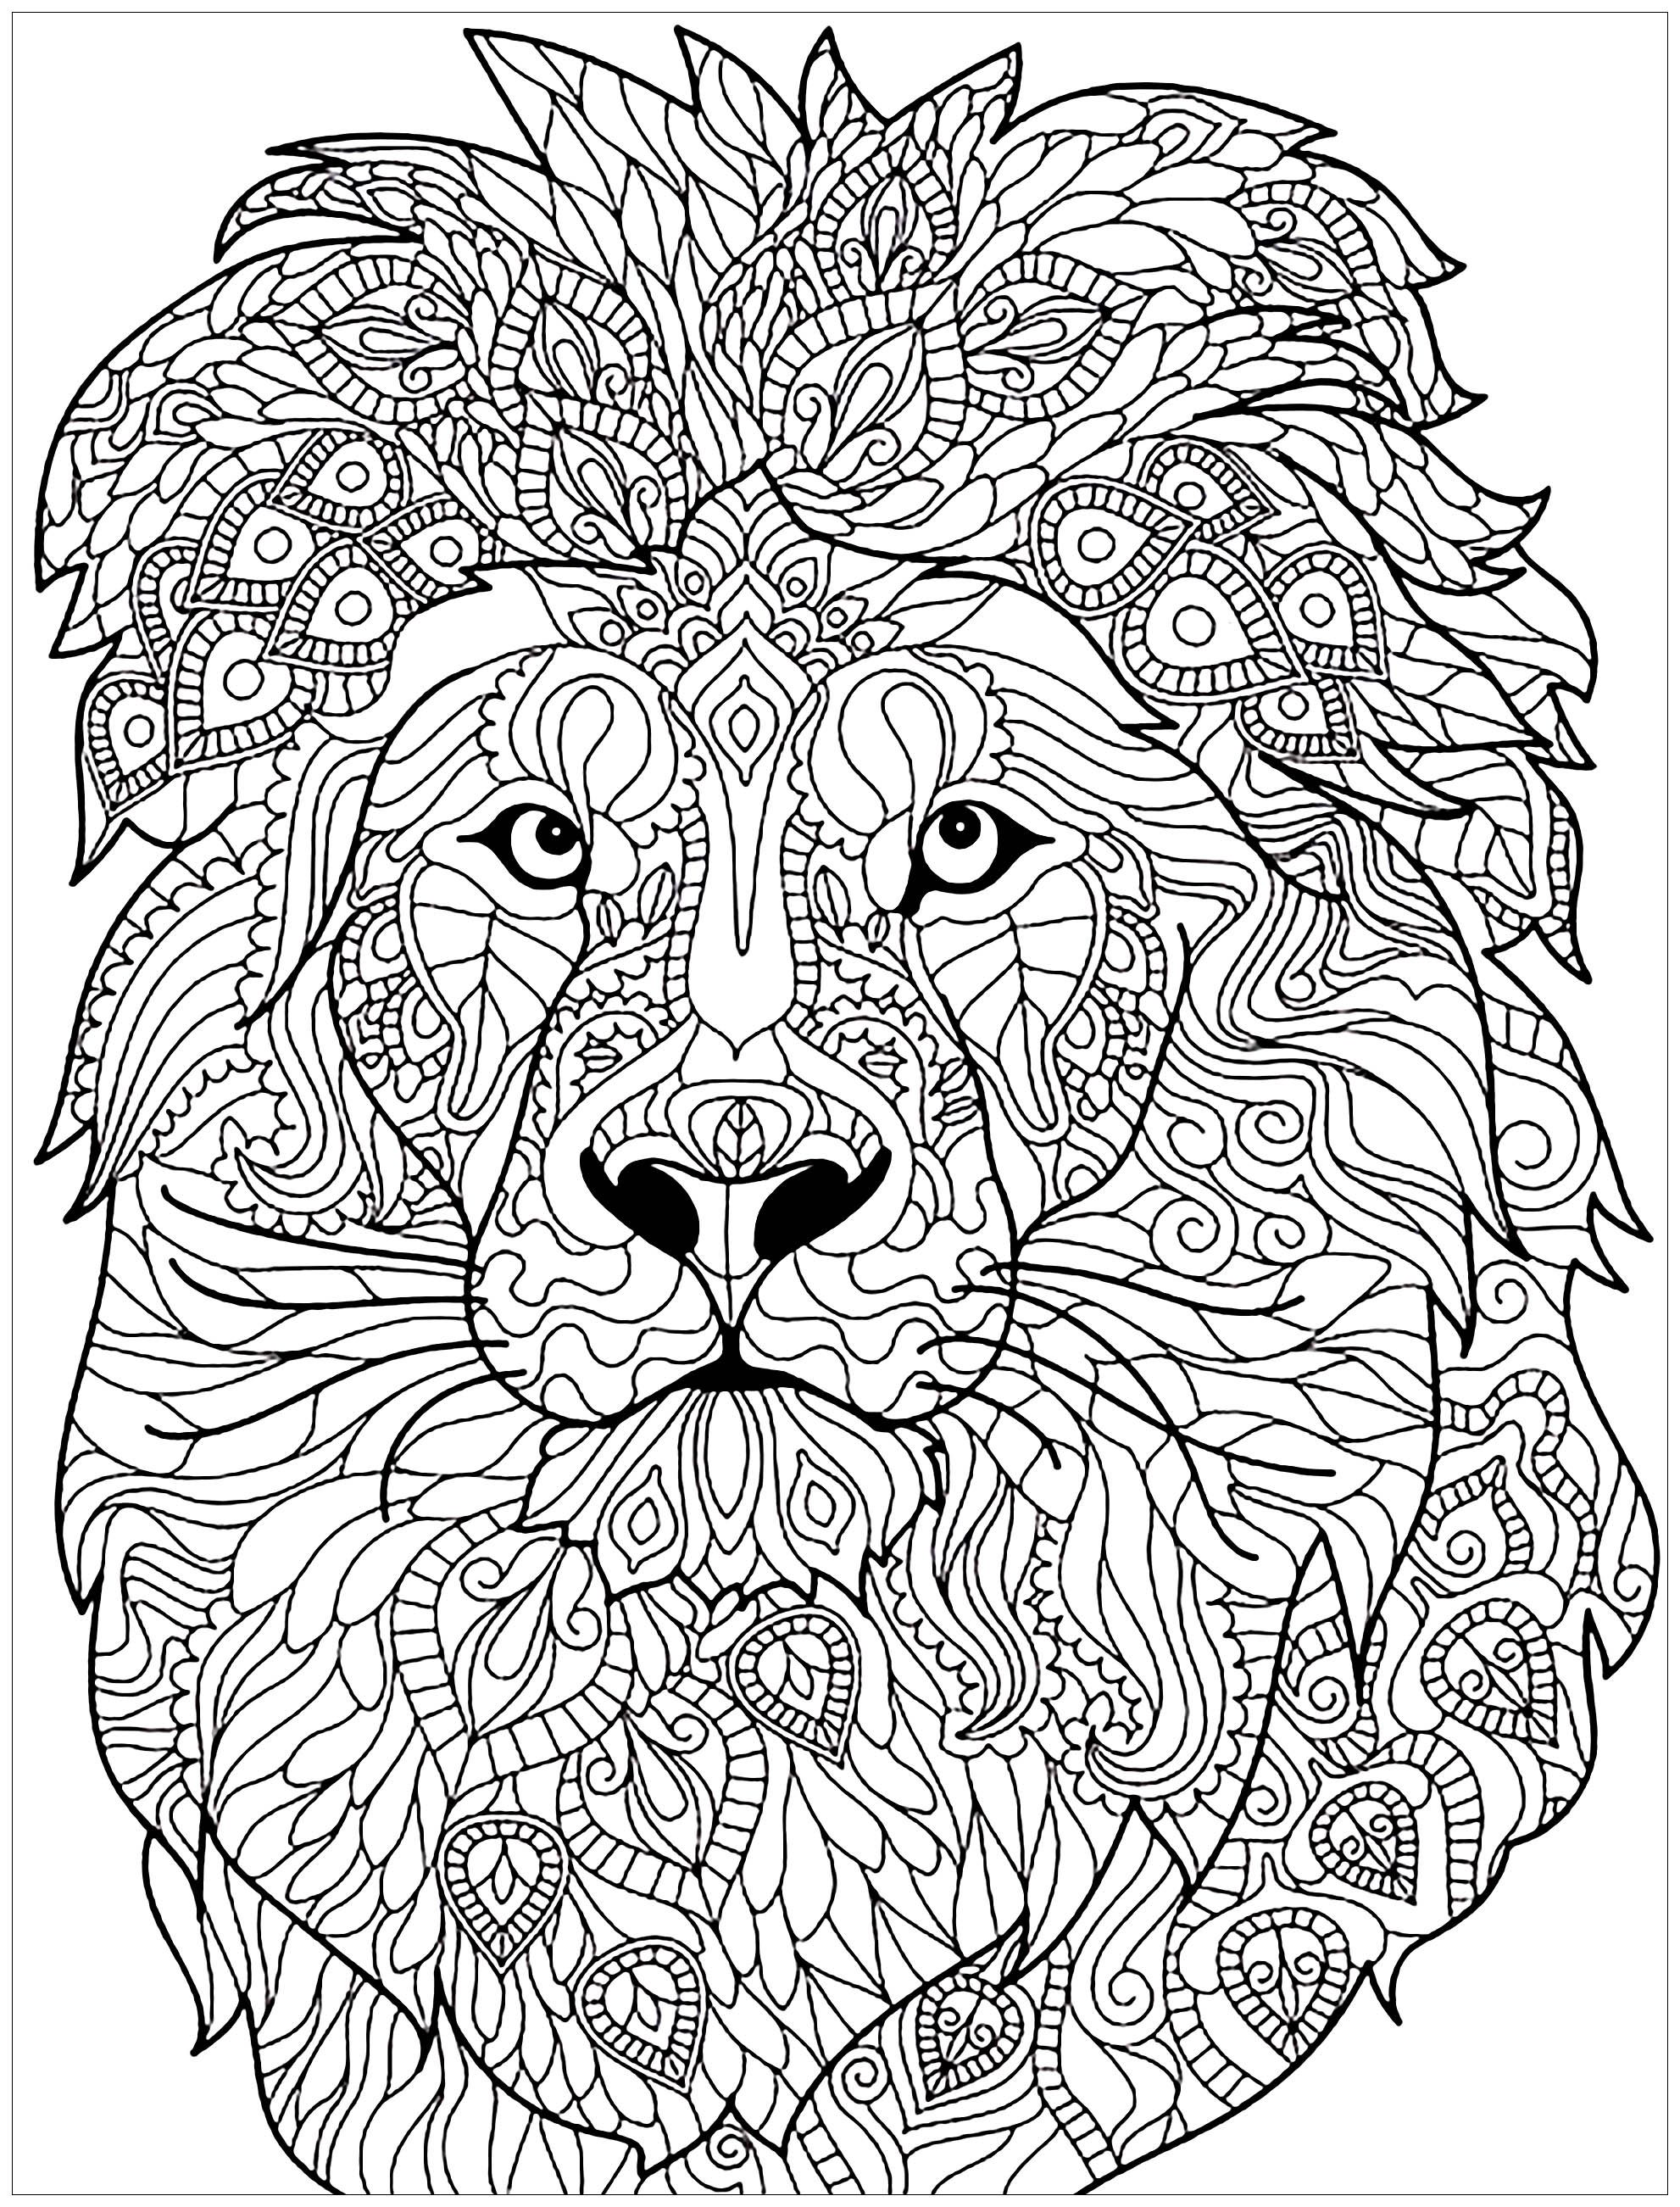 Lion Complex Patterns Lion Head With Very Complex Patterns From The Gallery Lions Just C Lion Coloring Pages Mandala Coloring Pages Animal Coloring Books